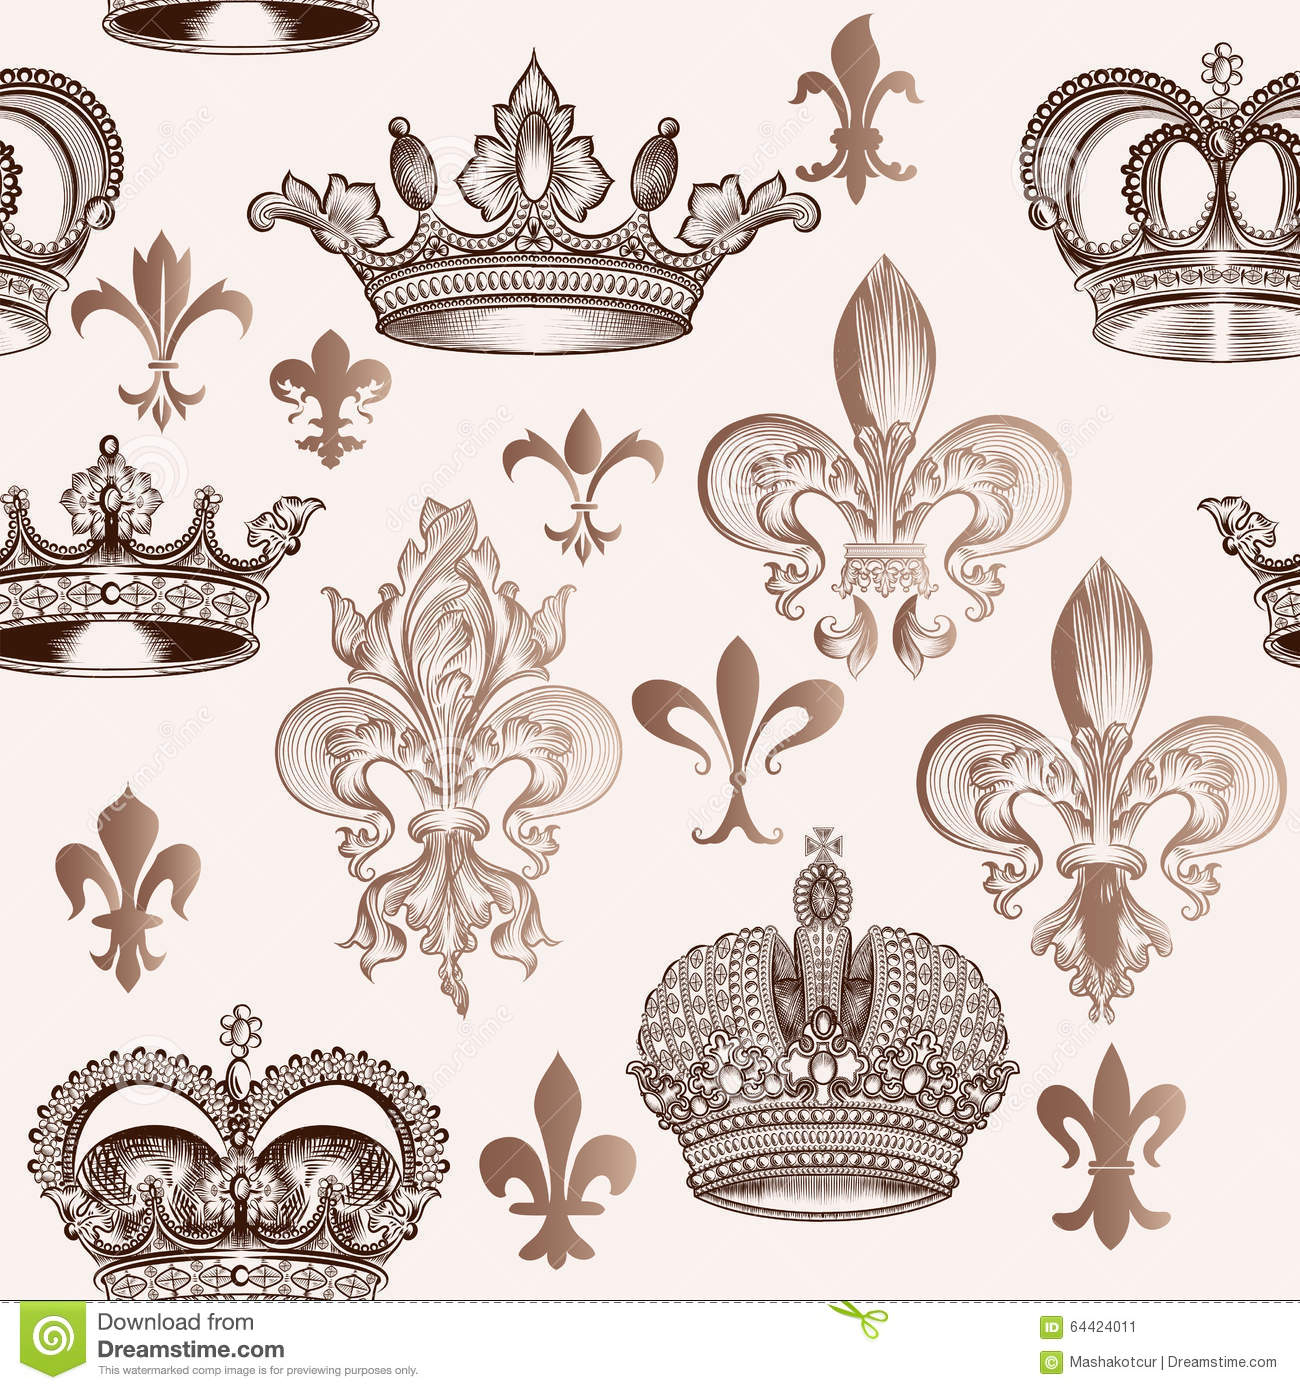 Vintage Seamless Pattern With Crowns And Fleur De Lis For ...